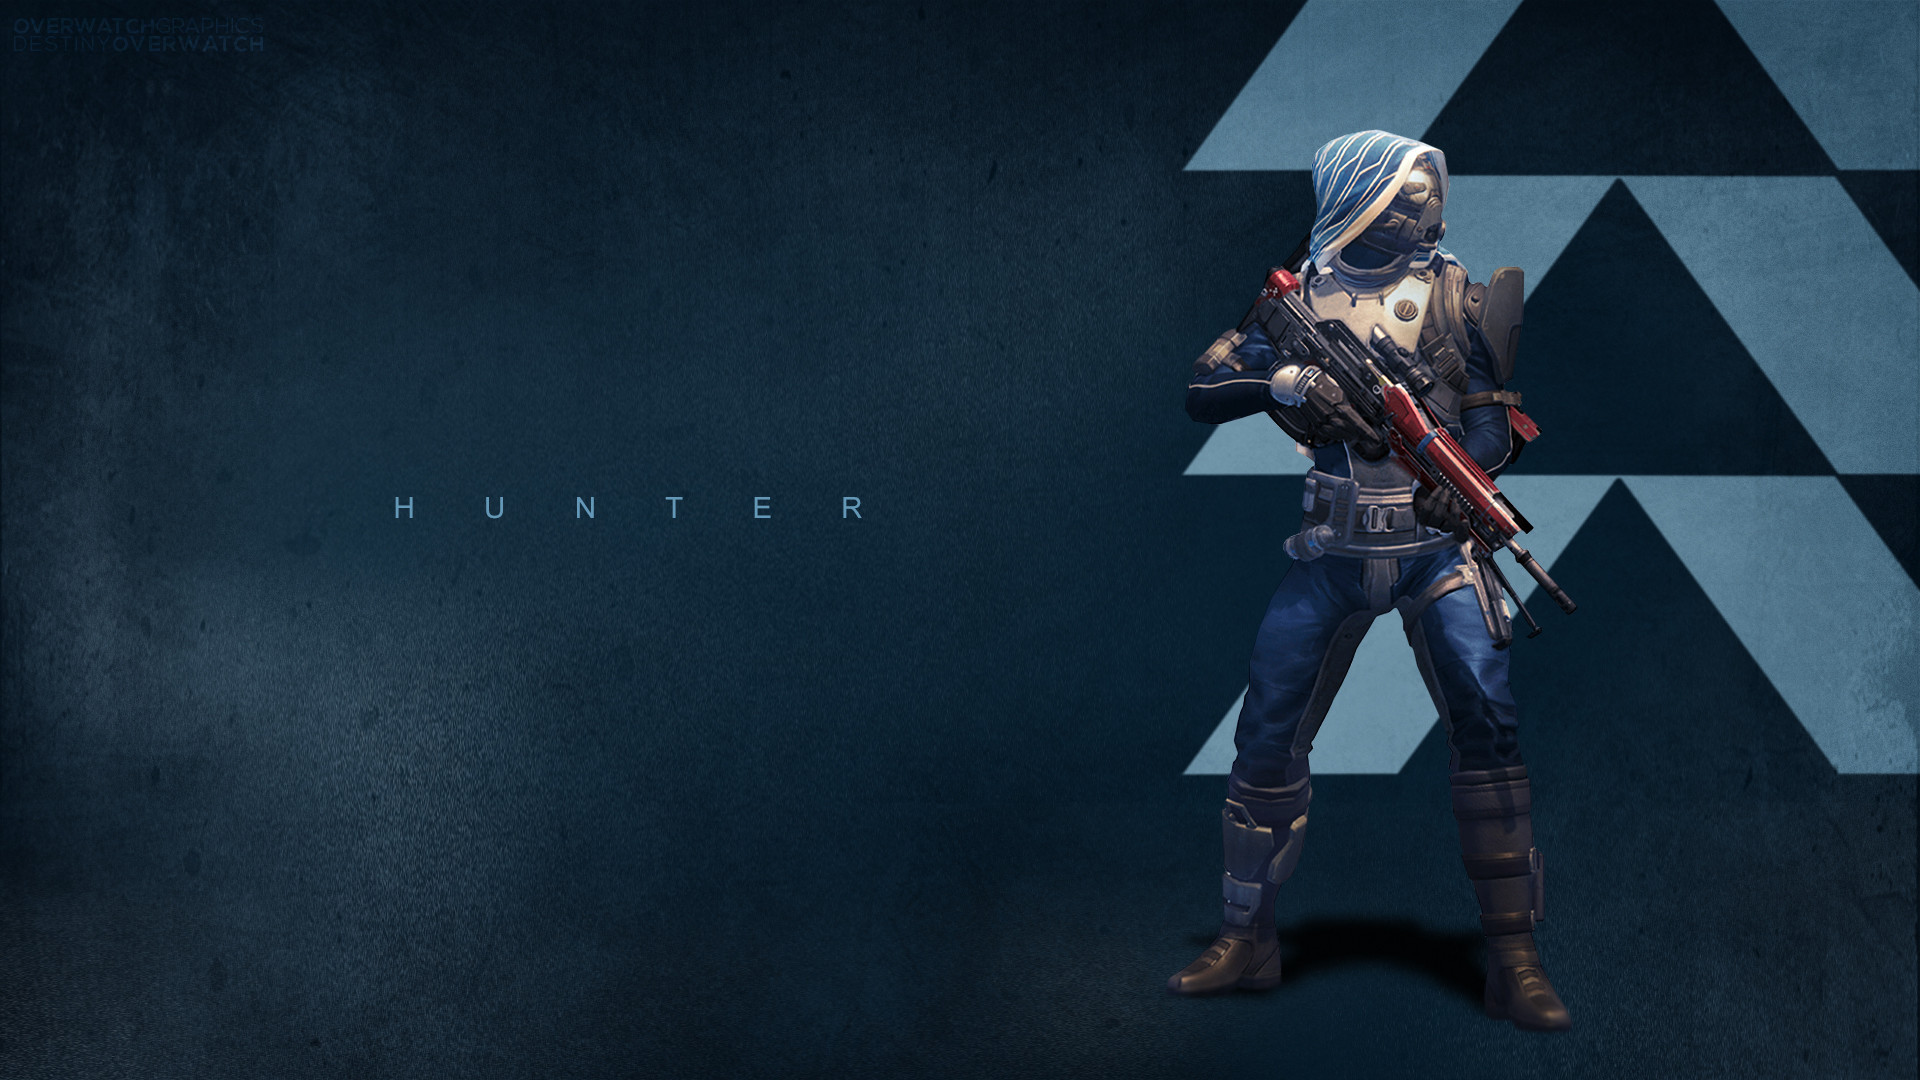 1920x1080 DeviantArt: More Like Destiny - Hunter Wallpaper by OverwatchGraphics